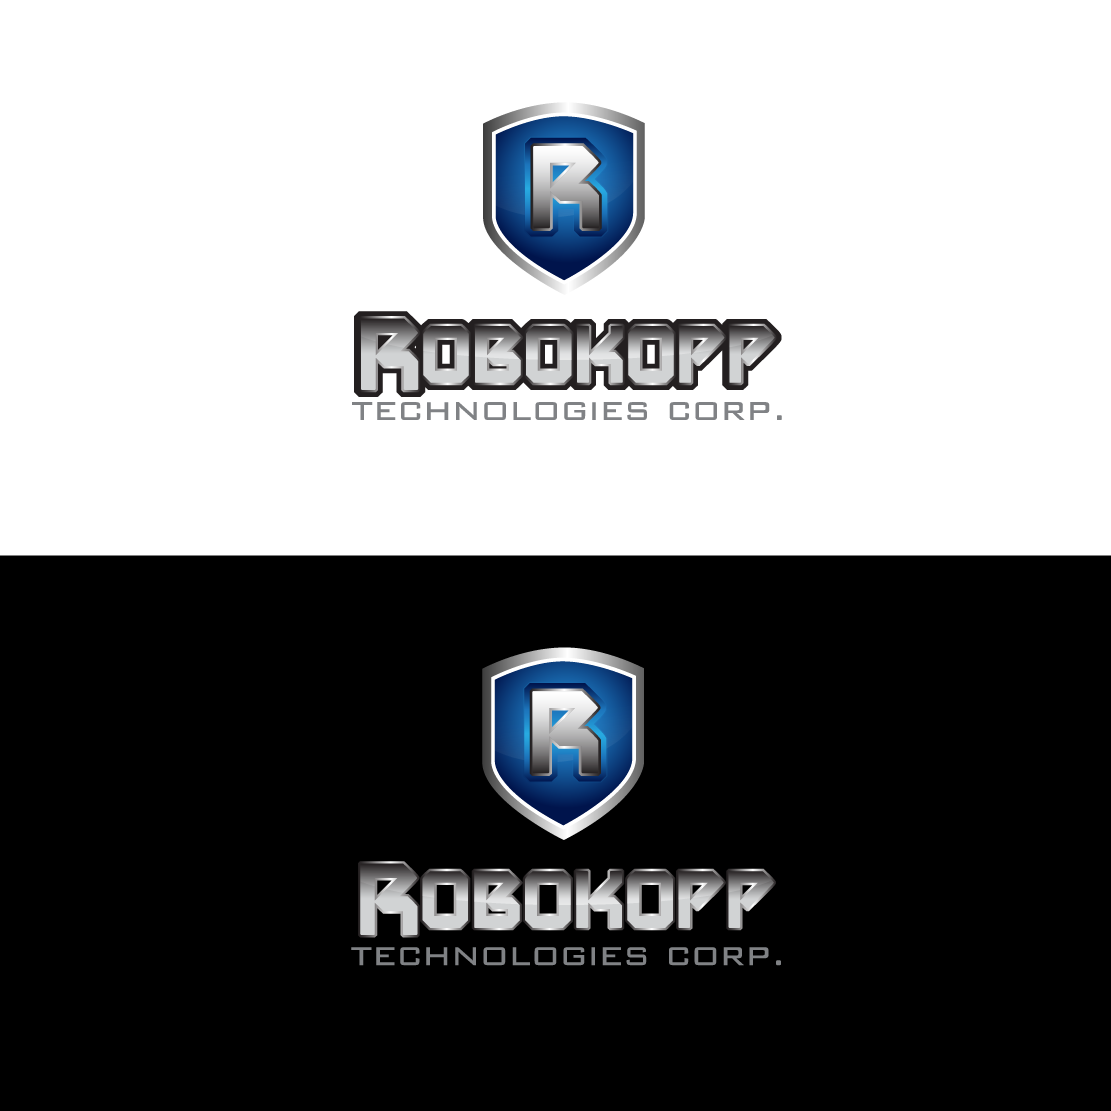 Logo Design by Private User - Entry No. 140 in the Logo Design Contest New Logo Design for Robokopp Technologies Corp..